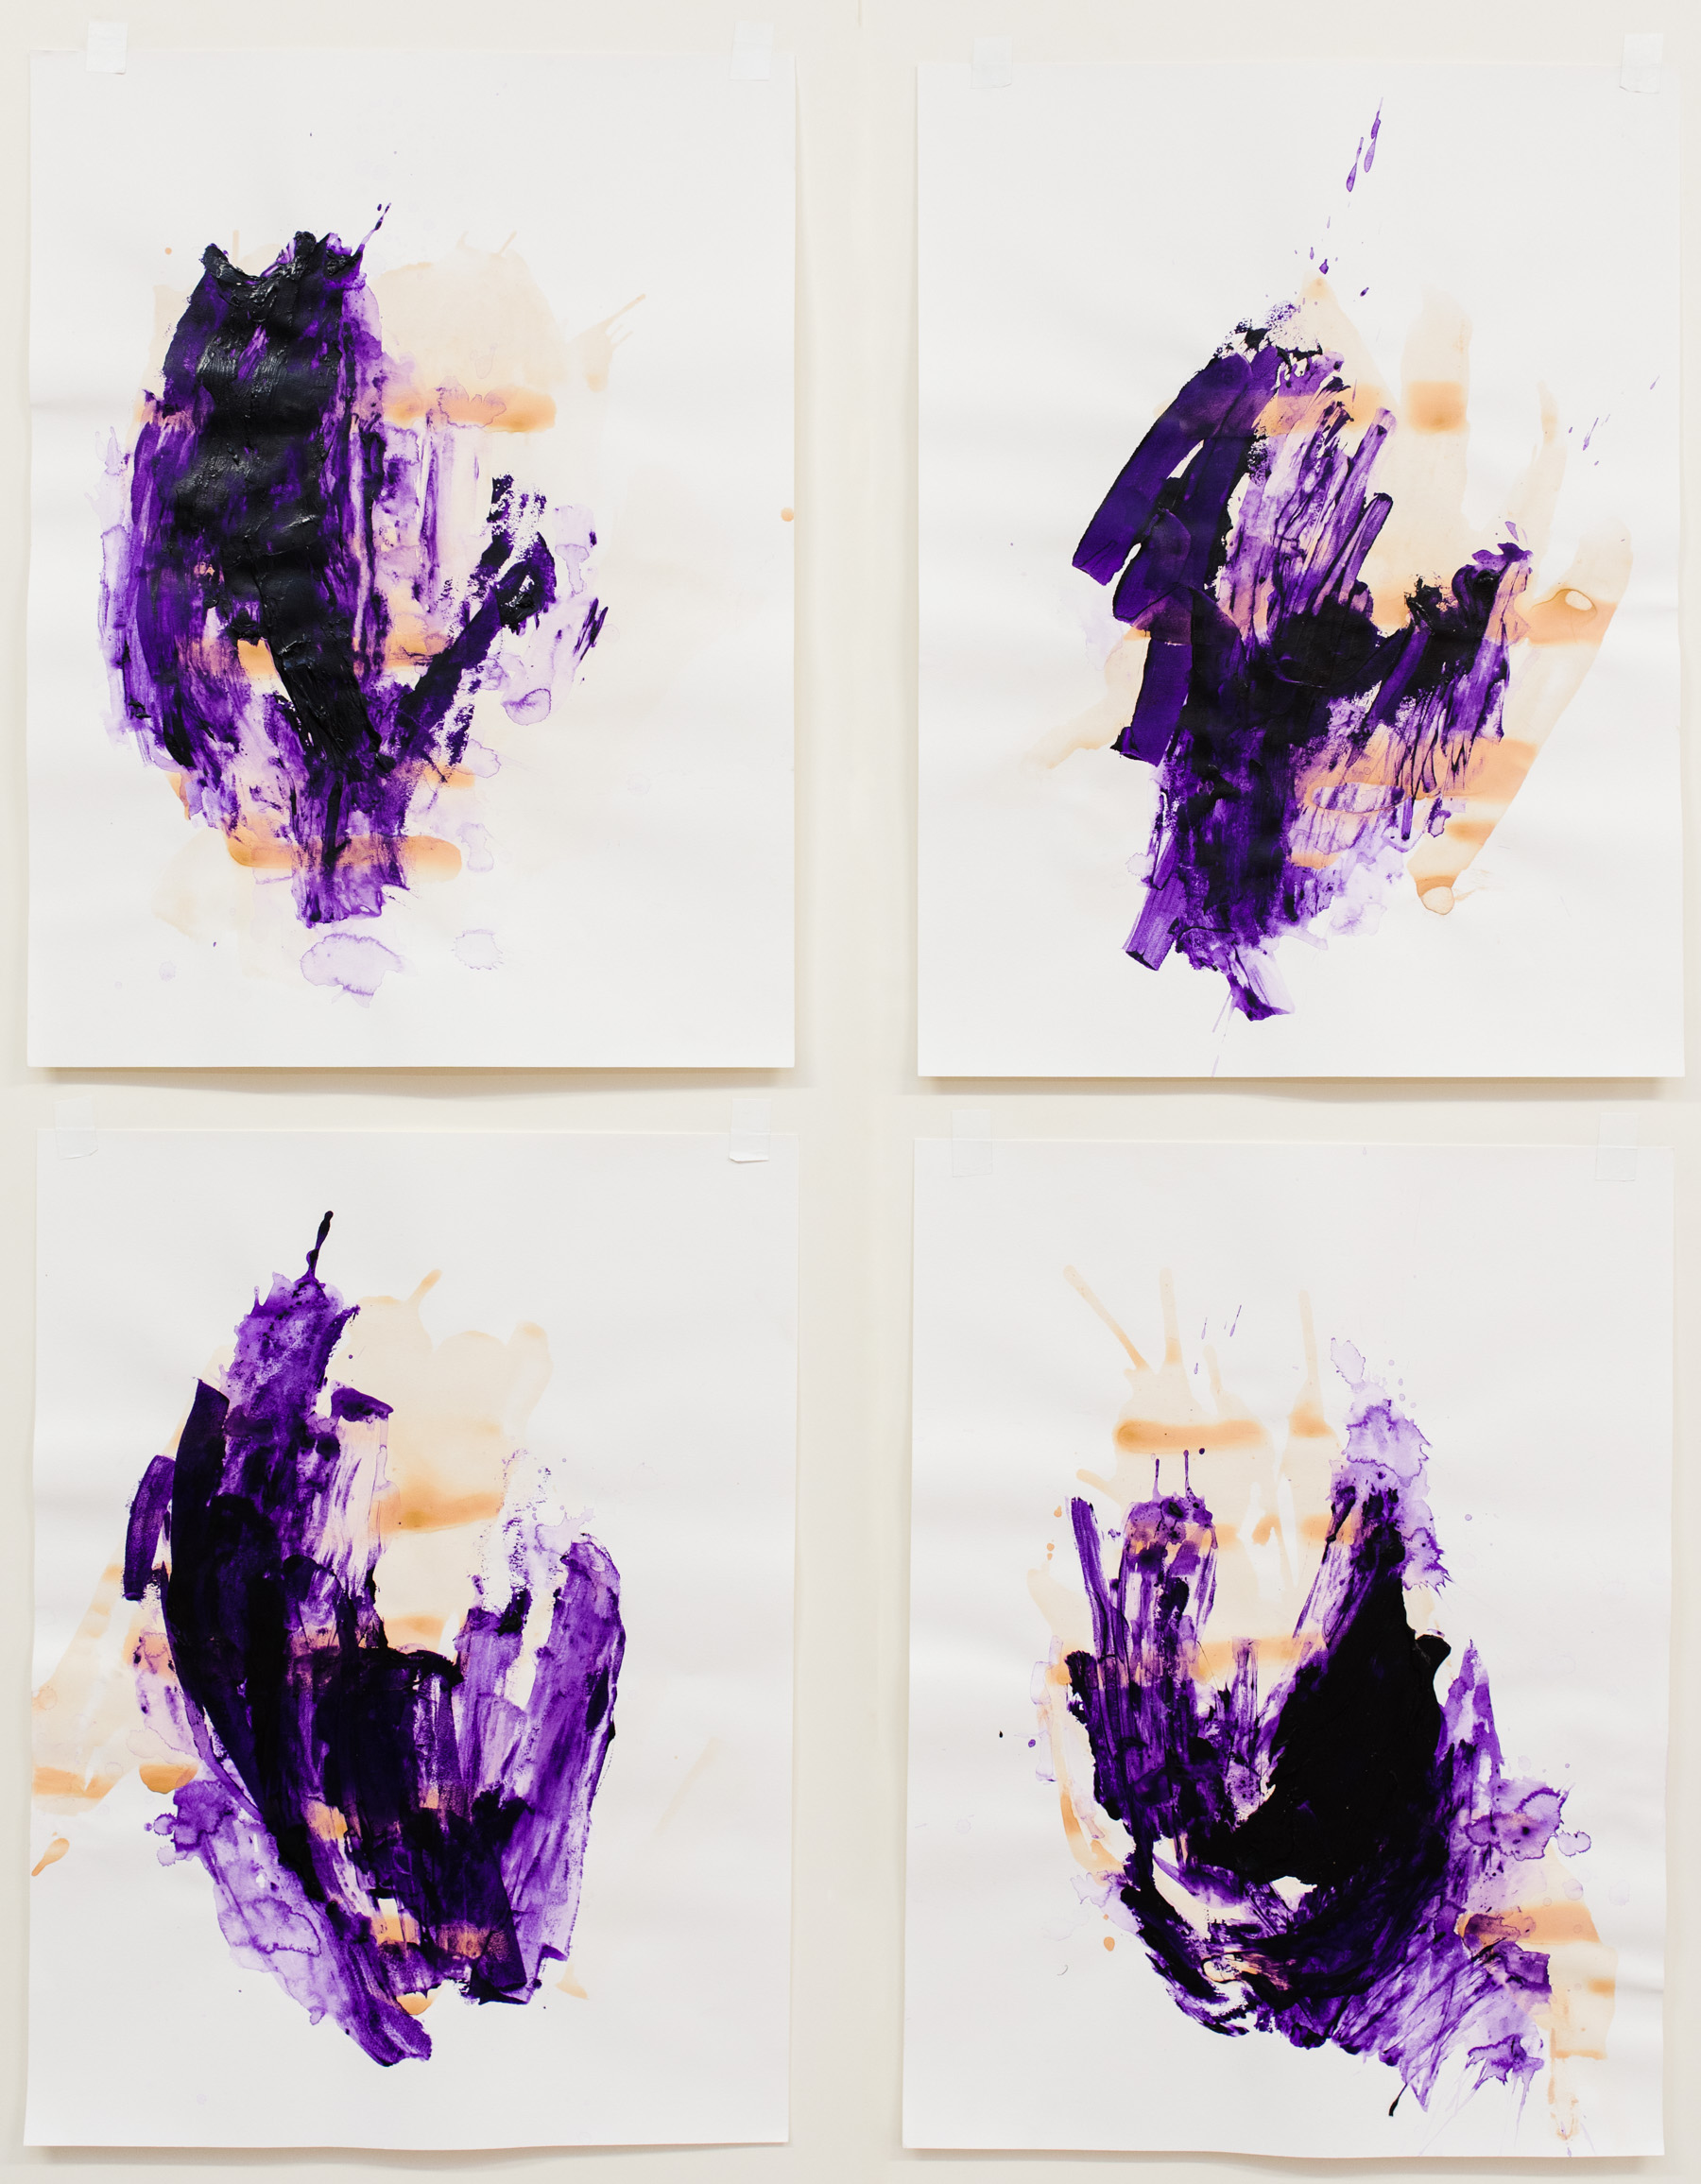 """Digging In #1-4 , 18""""x24"""" each, acrylic on paper, 2017, available"""